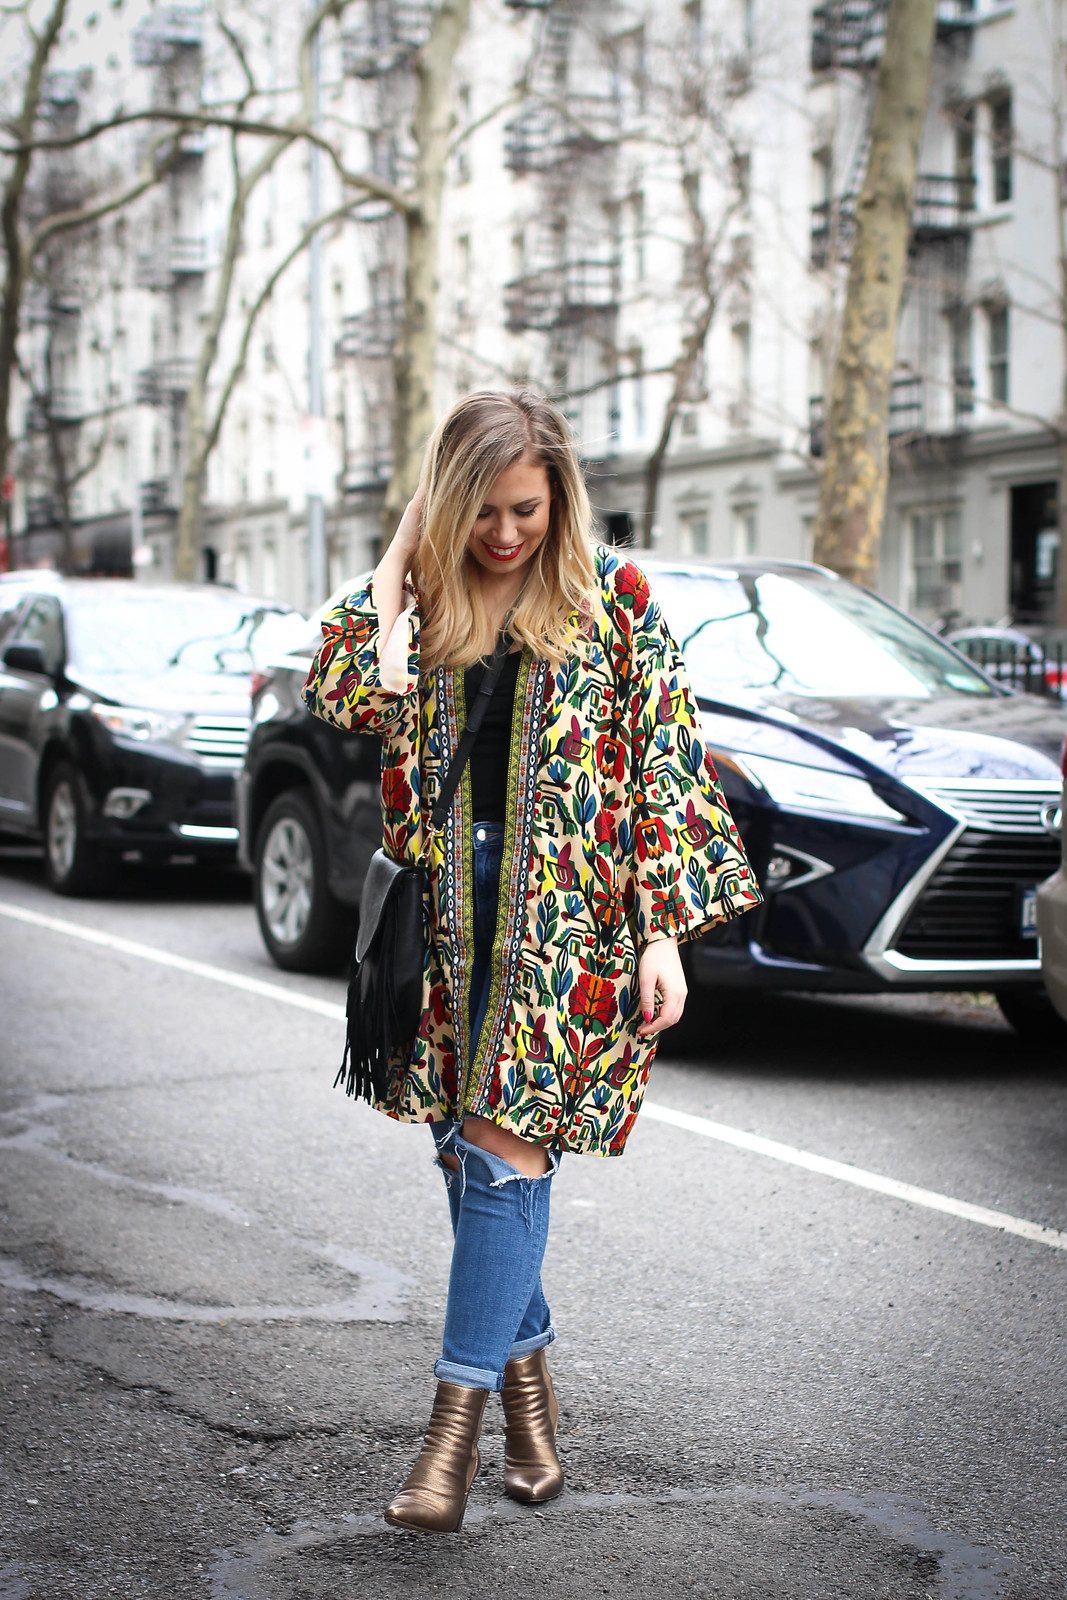 Inexpensive Spring Outfit Idea New York City Fashion Colorful Printed Coat Distressed Denim